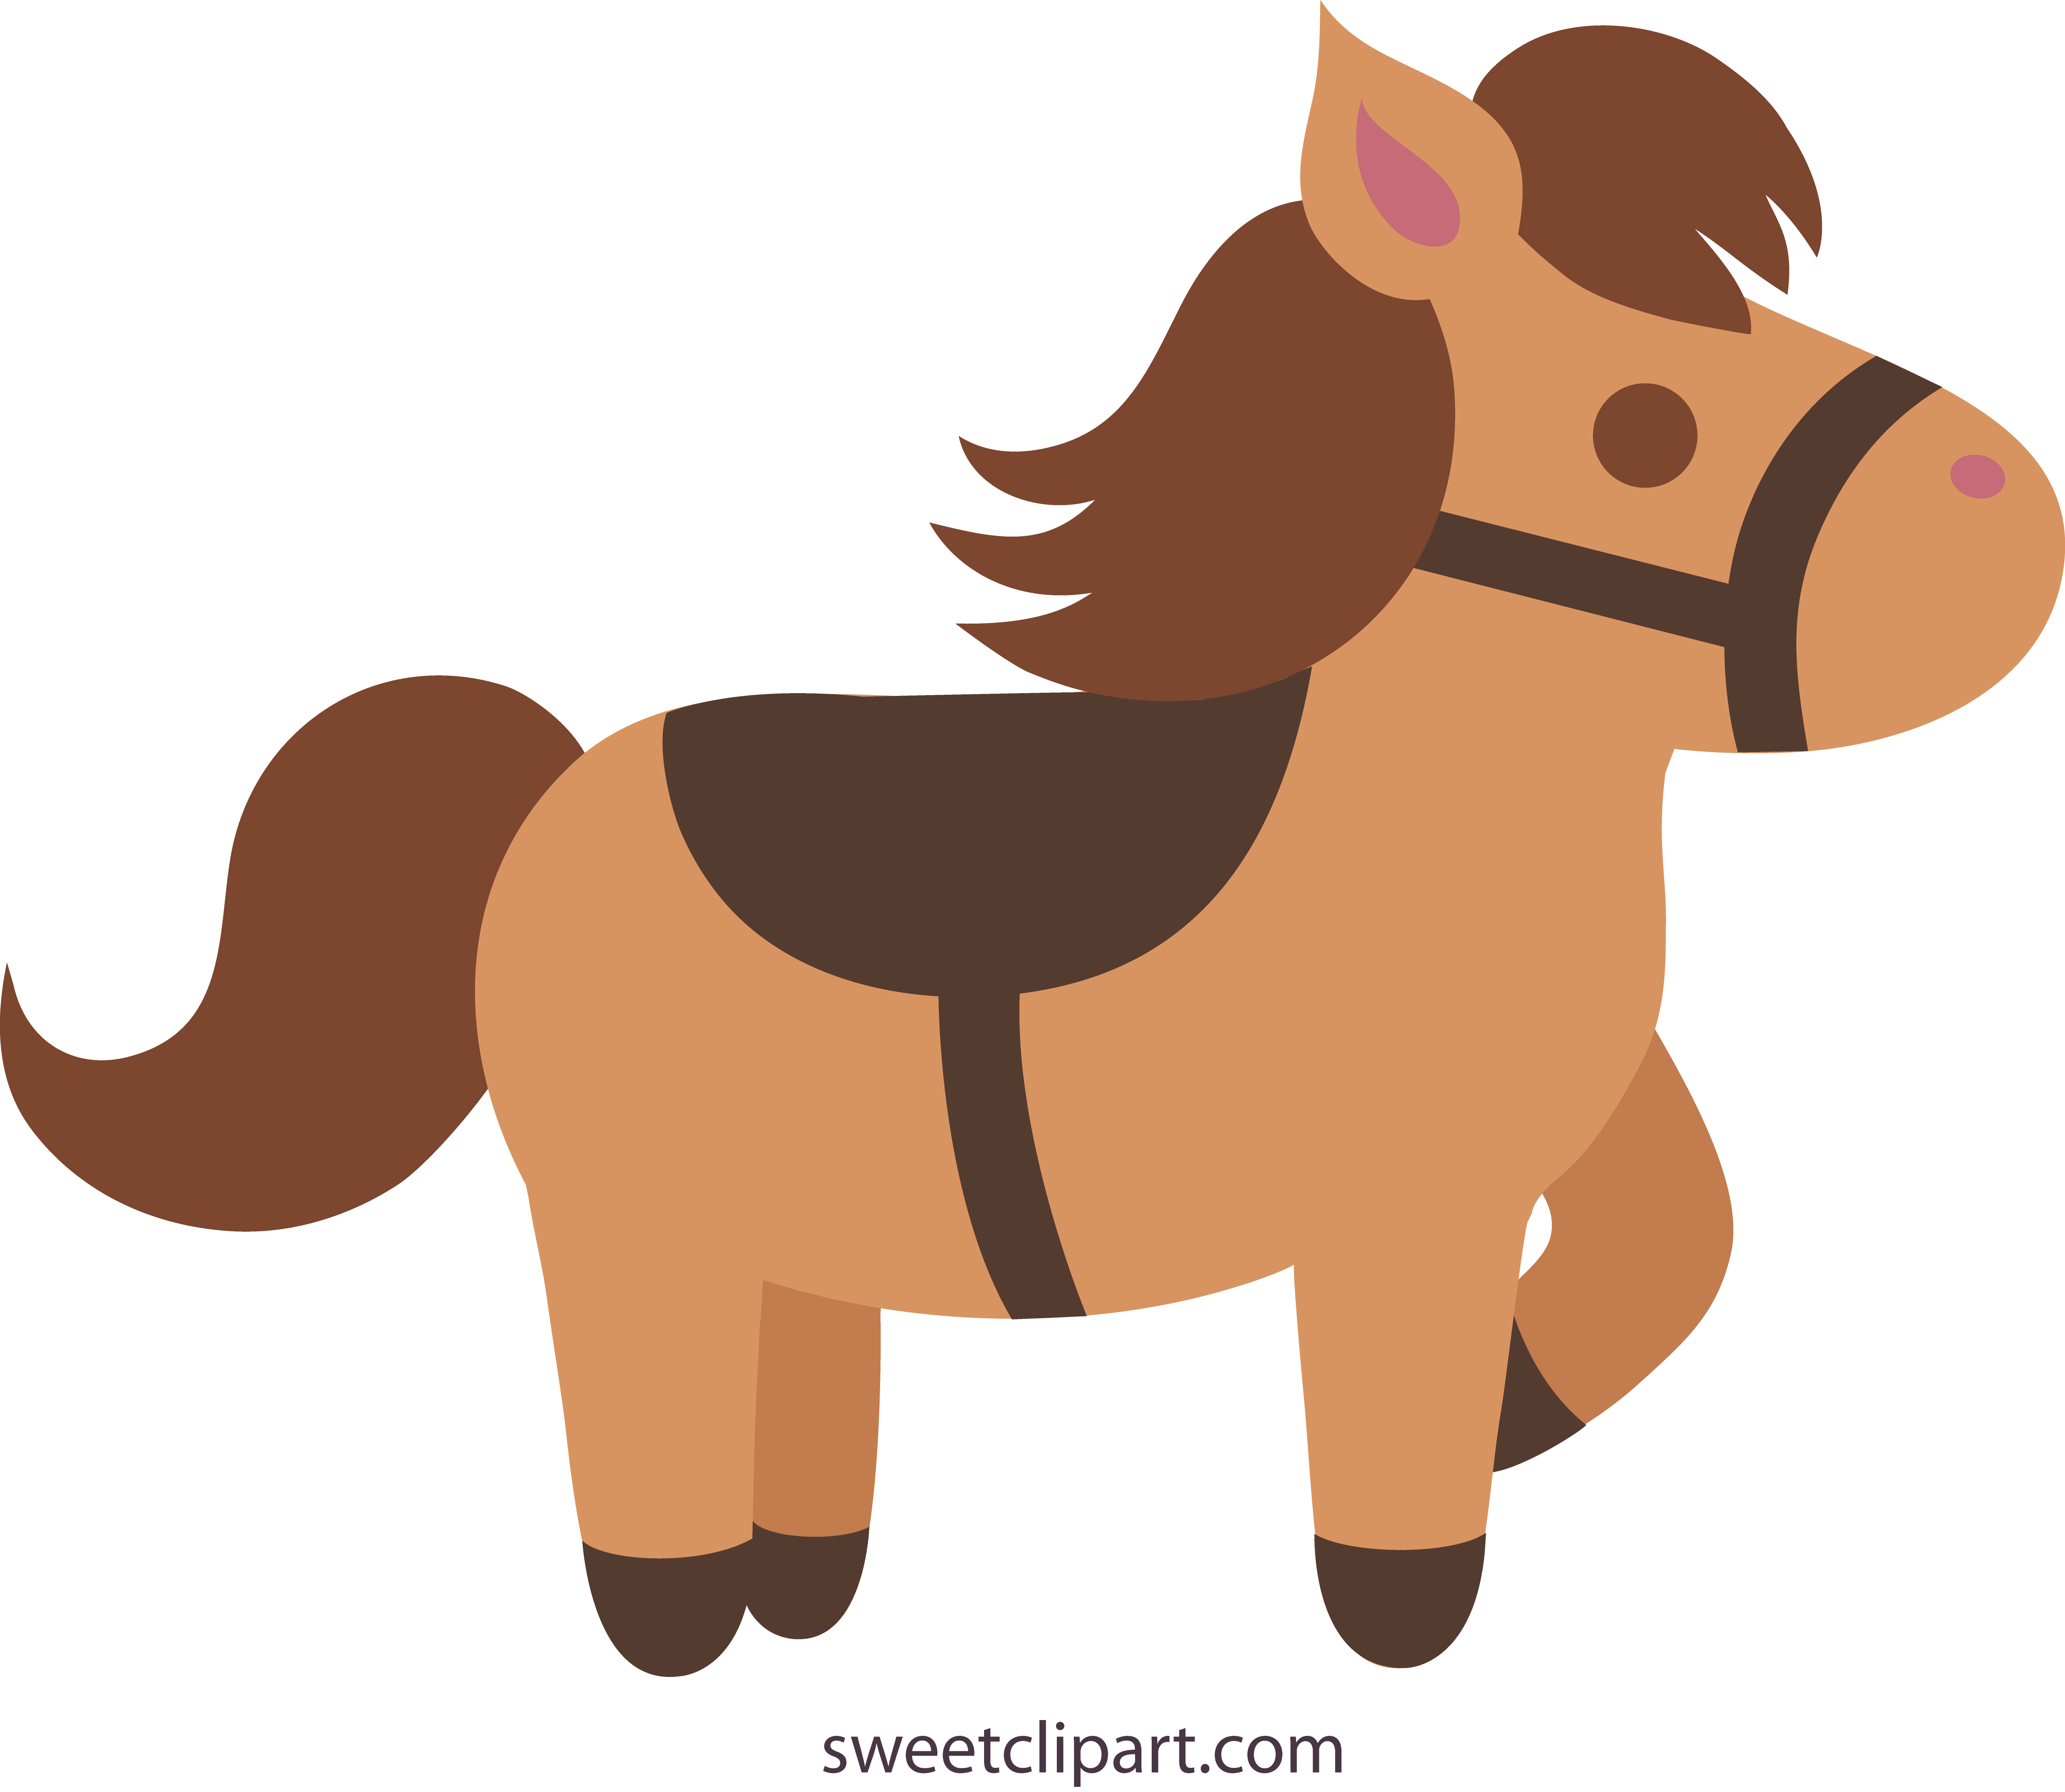 pictures of horses clipart at getdrawings com free for personal rh getdrawings com horse clipart free horse race clipart images